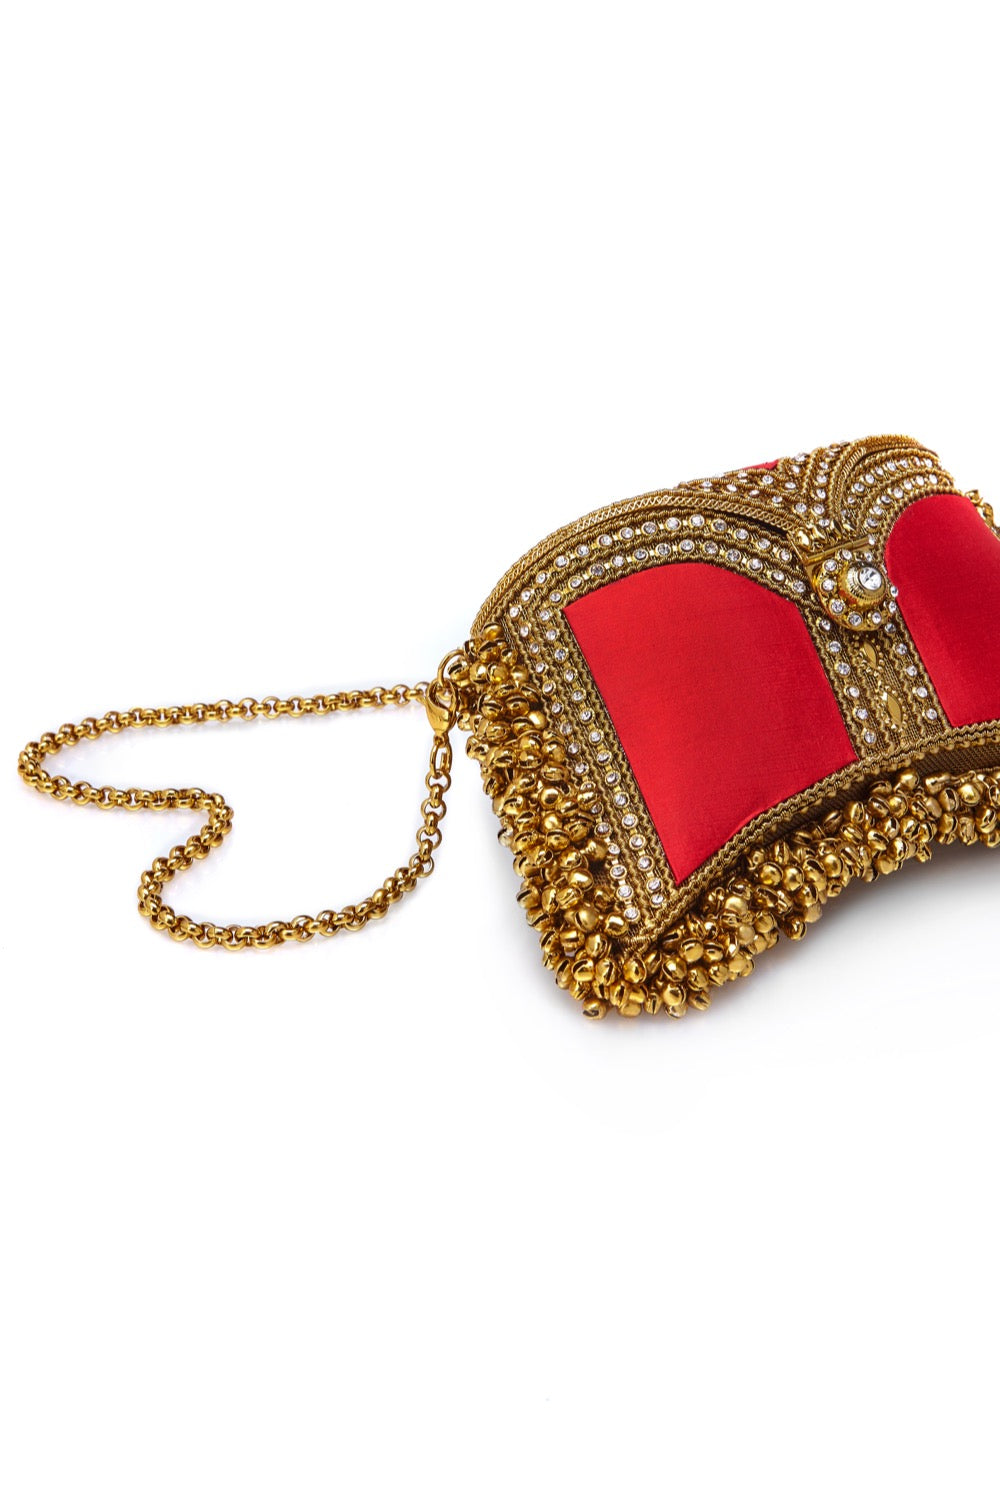 Mae Cassidy Wolf and Badger  Embellished clutch Handbag handmade luxury accessories unique silk beaded zeenat clutch cross body fiery red